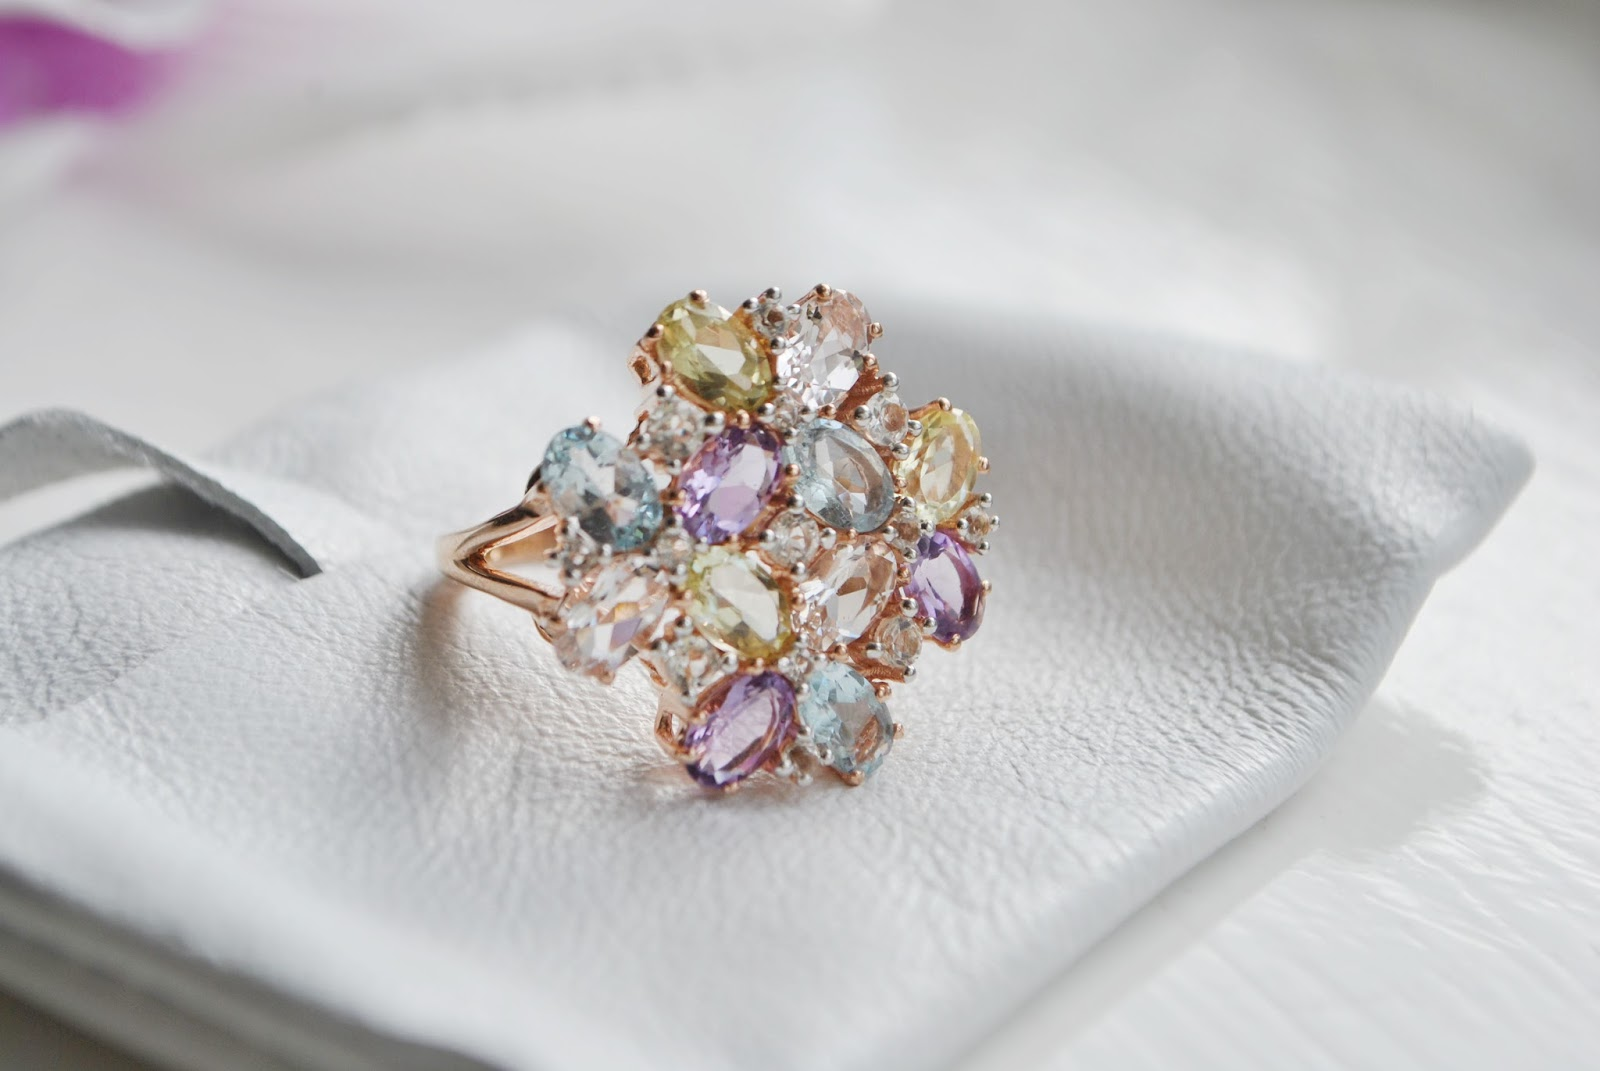 Gemporia   Flora Ring   Review & Images   G.T.W.L